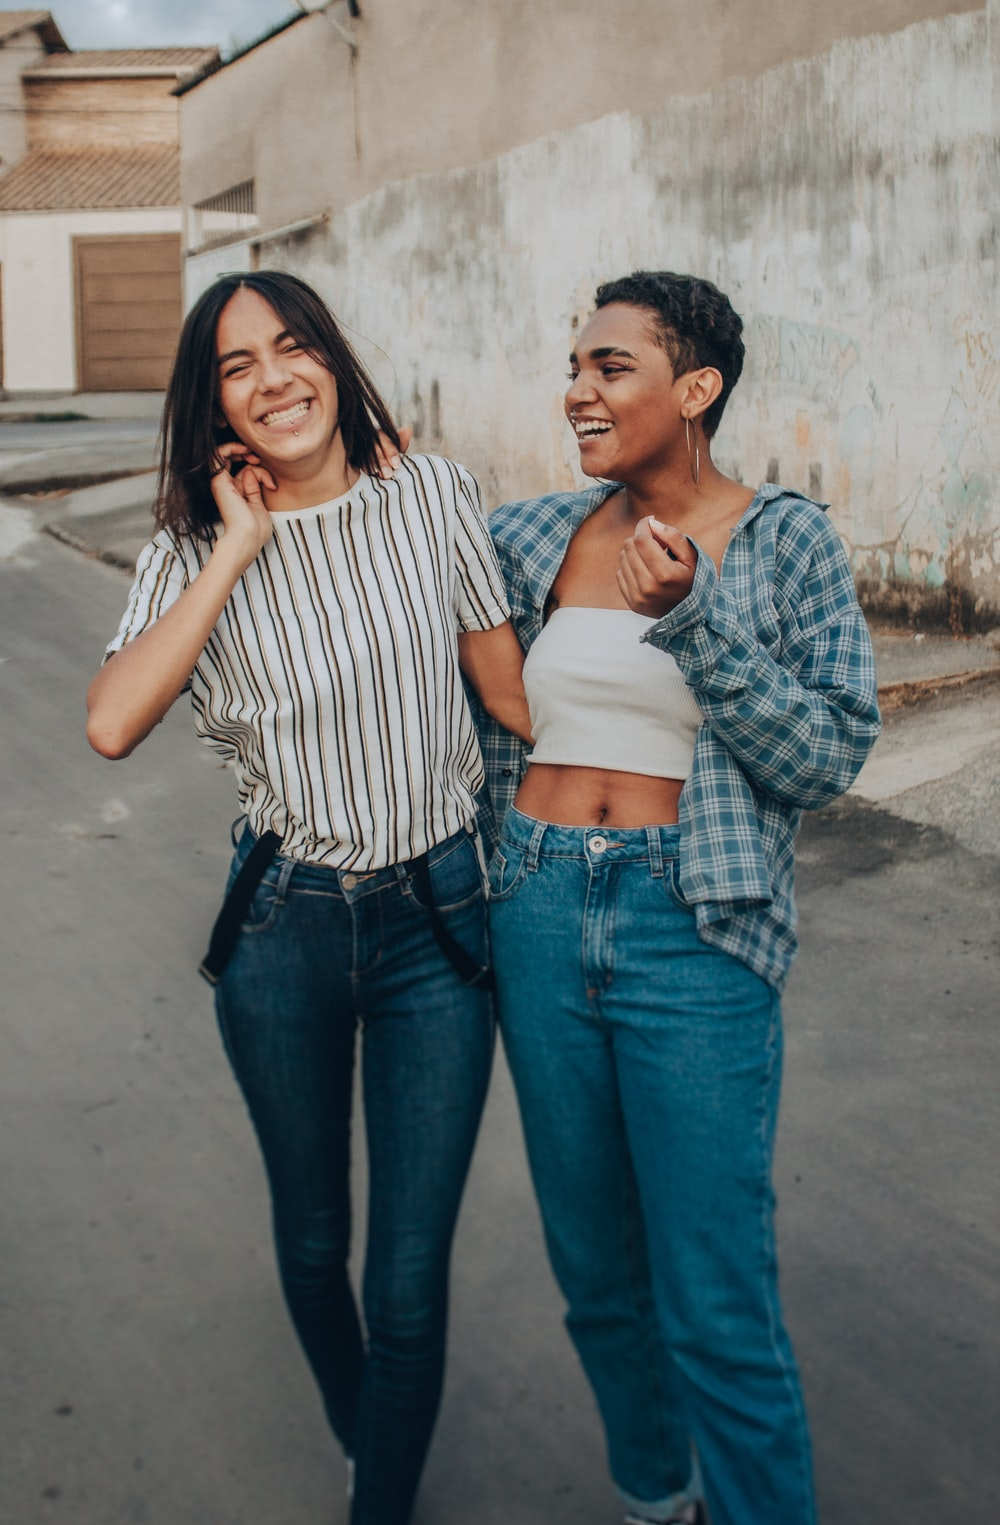 woman in white and black striped shirt and blue denim jeans standing beside woman in blue